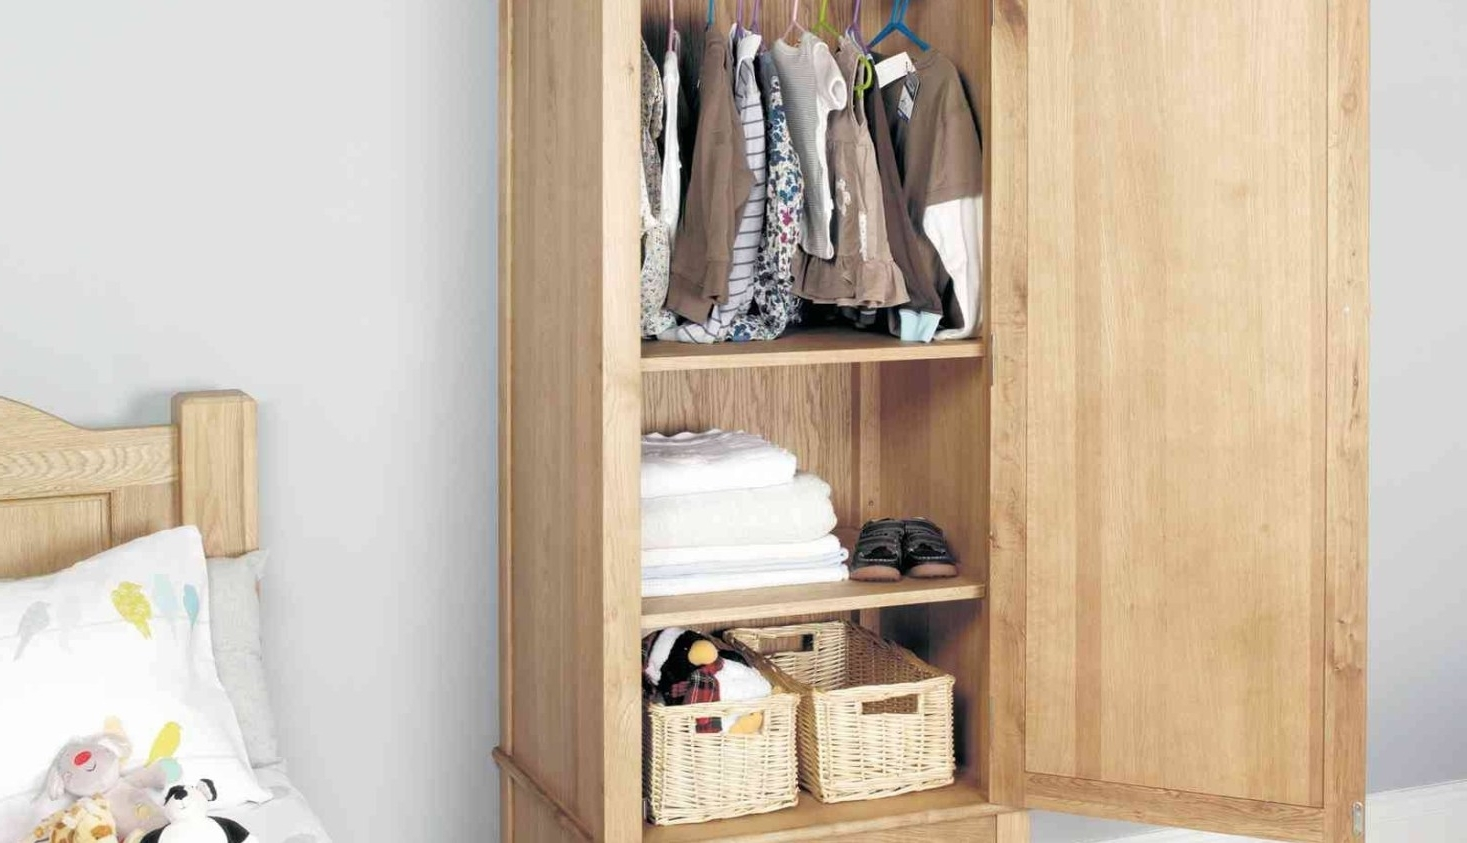 2018 Shelf : Wardrobe Hanging Rail Stunning Double Hanging Rail Pertaining To Large Double Rail Wardrobes (View 5 of 15)